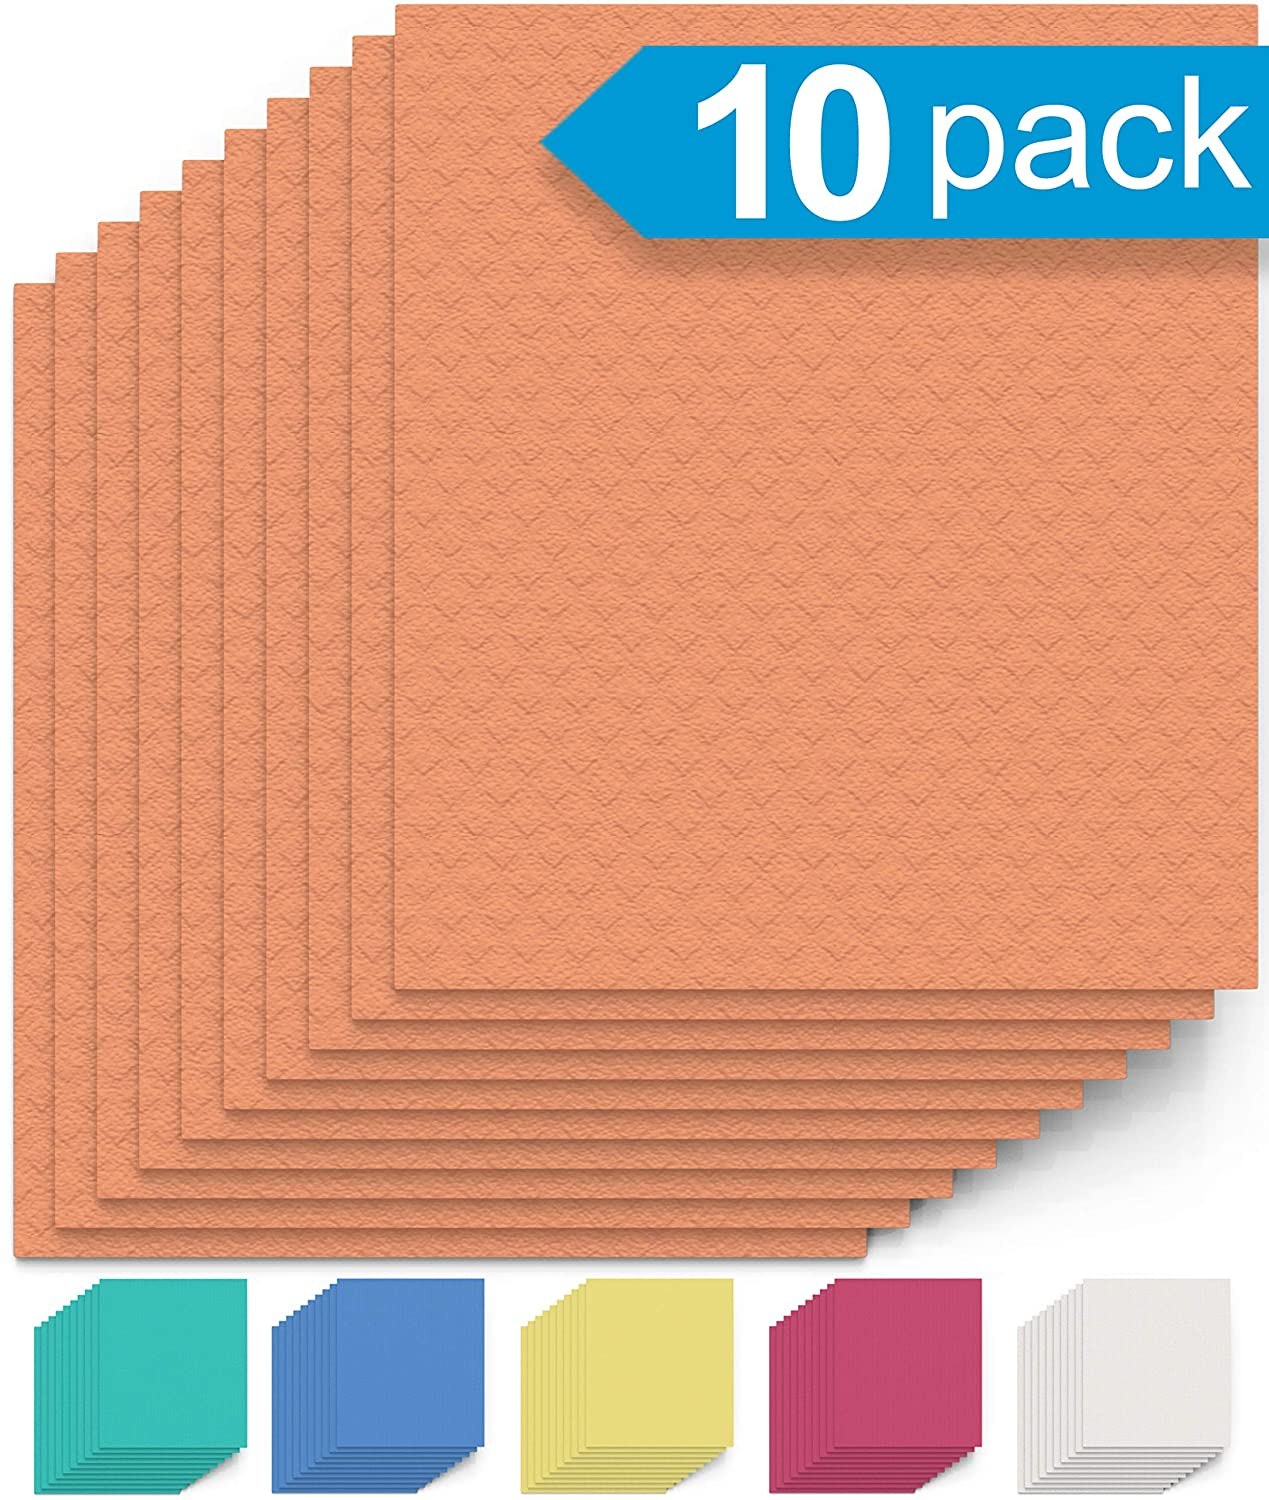 Swedish Dishcloth Cellulose Sponge Cloths - Bulk 10 Pack of Eco-Friendly No Odor Reusable Cleaning Cloths for Kitchen - Absorbent Dish Cloth Hand Towel (10 Dishcloths - Orange)